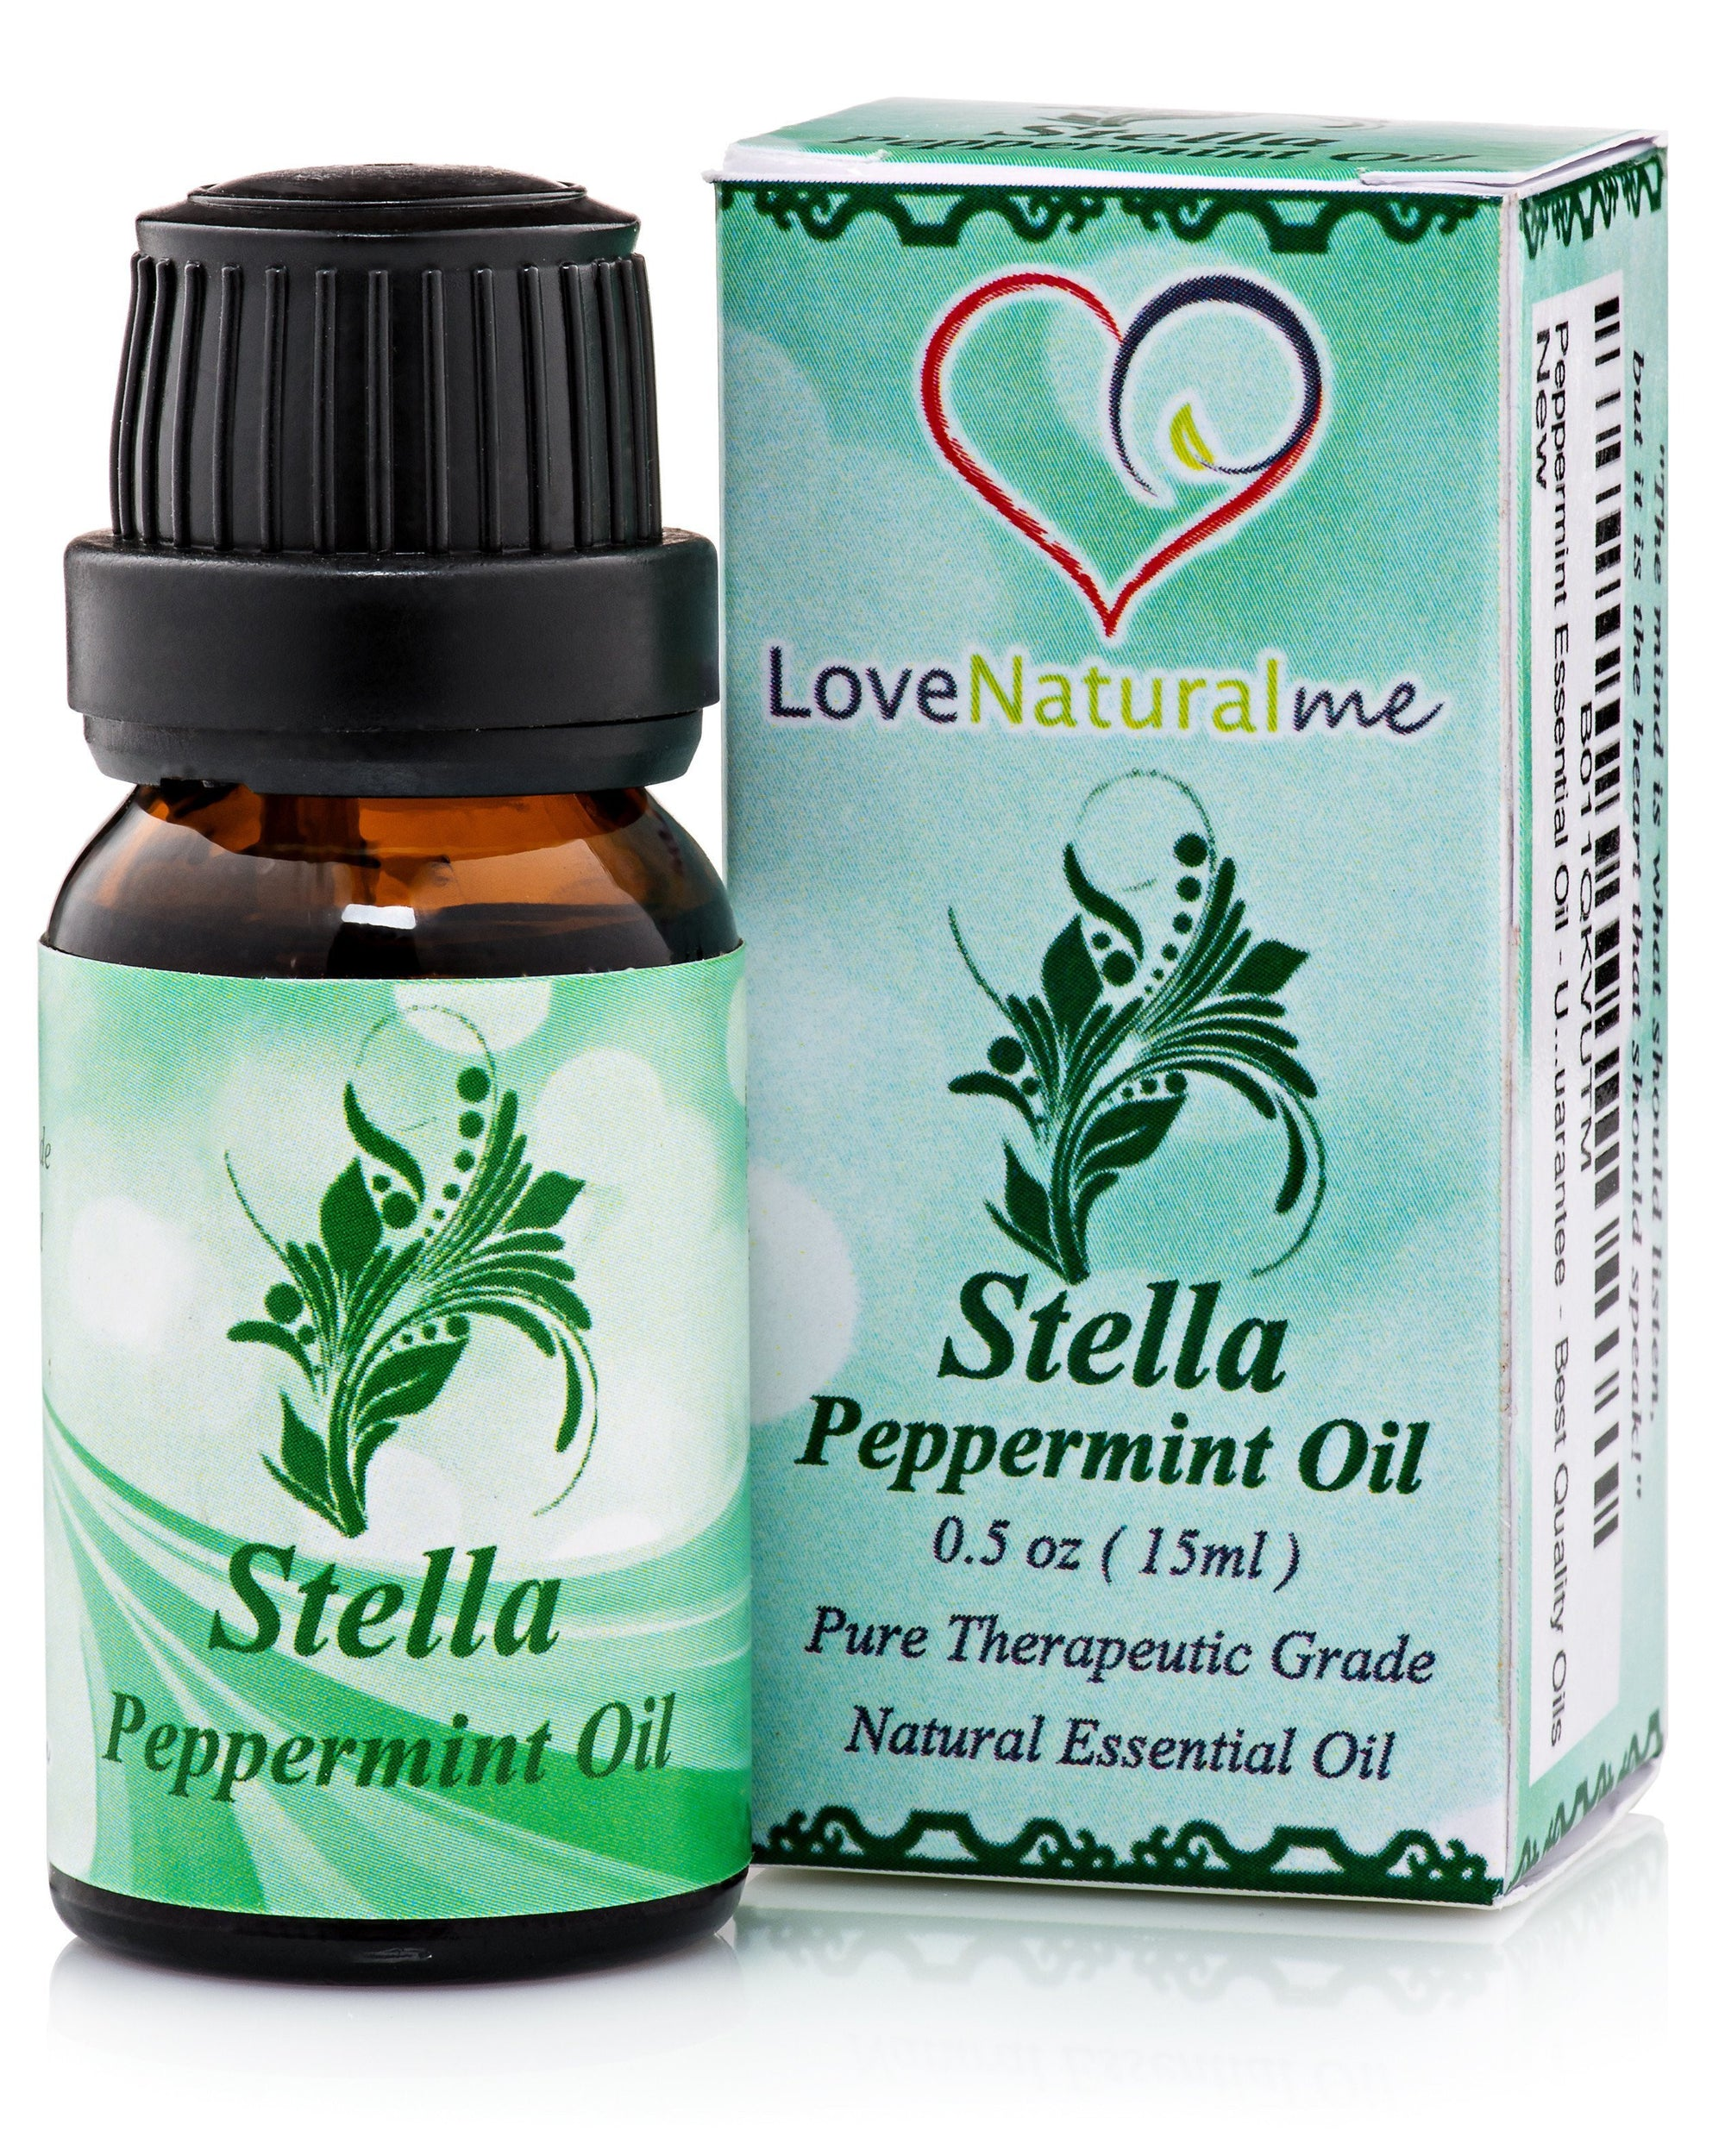 Swiss Botany essential oils LoveNaturalMe GC-MS Therapeutic Peppermint Oil